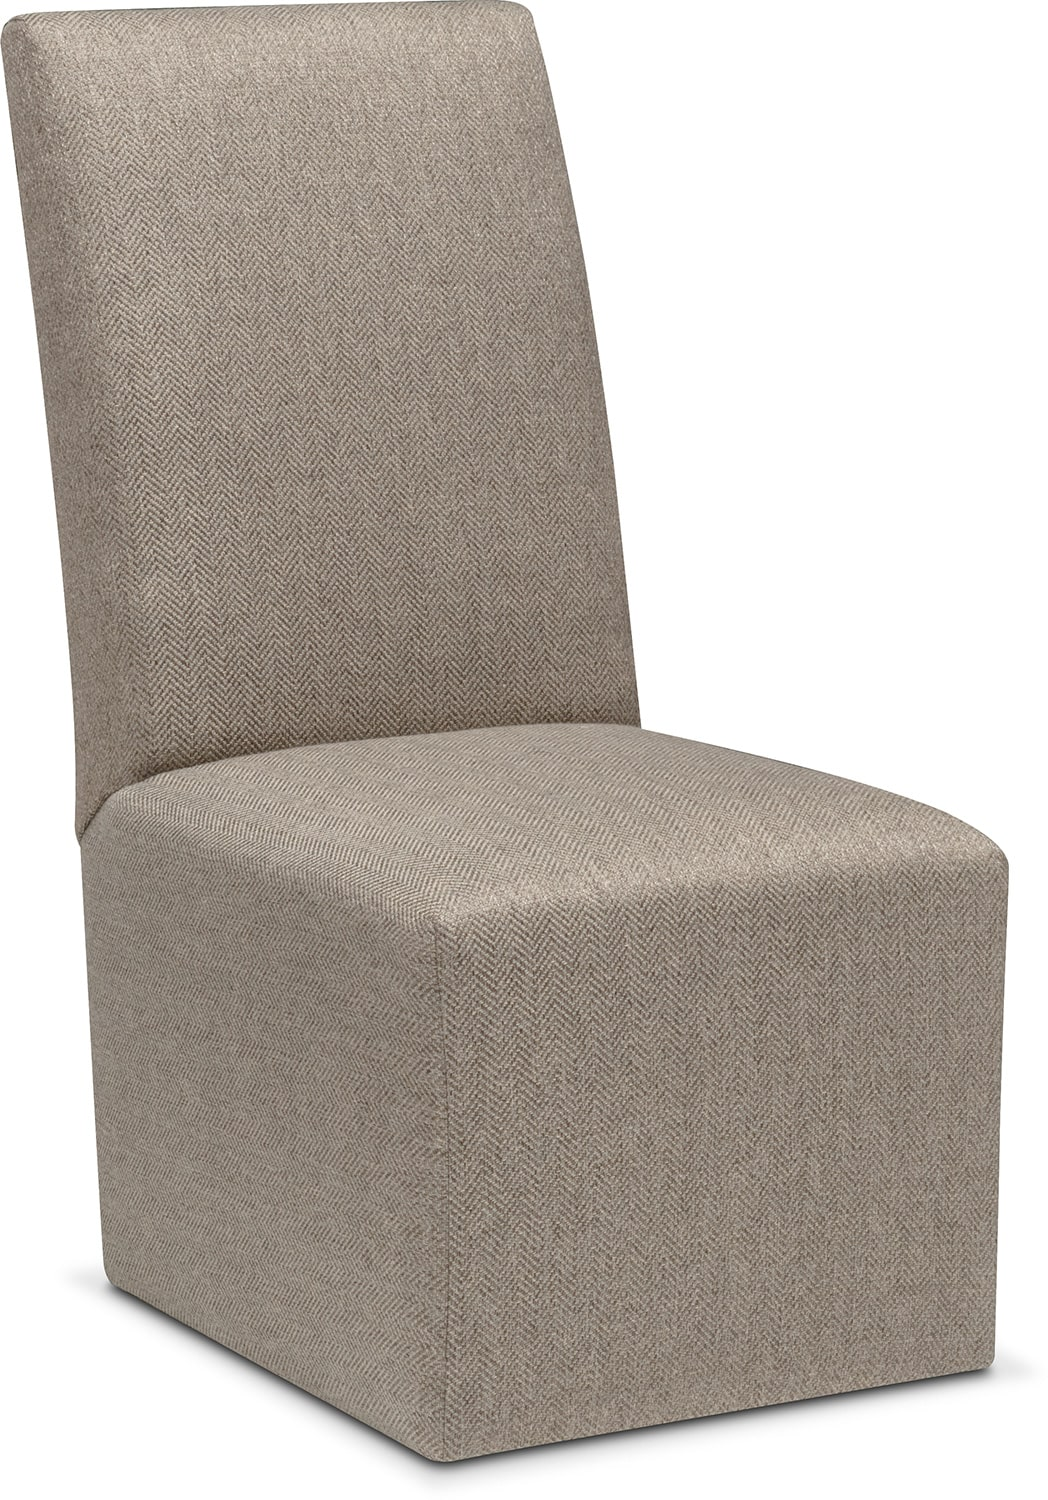 Lathan Side Chair   Moss